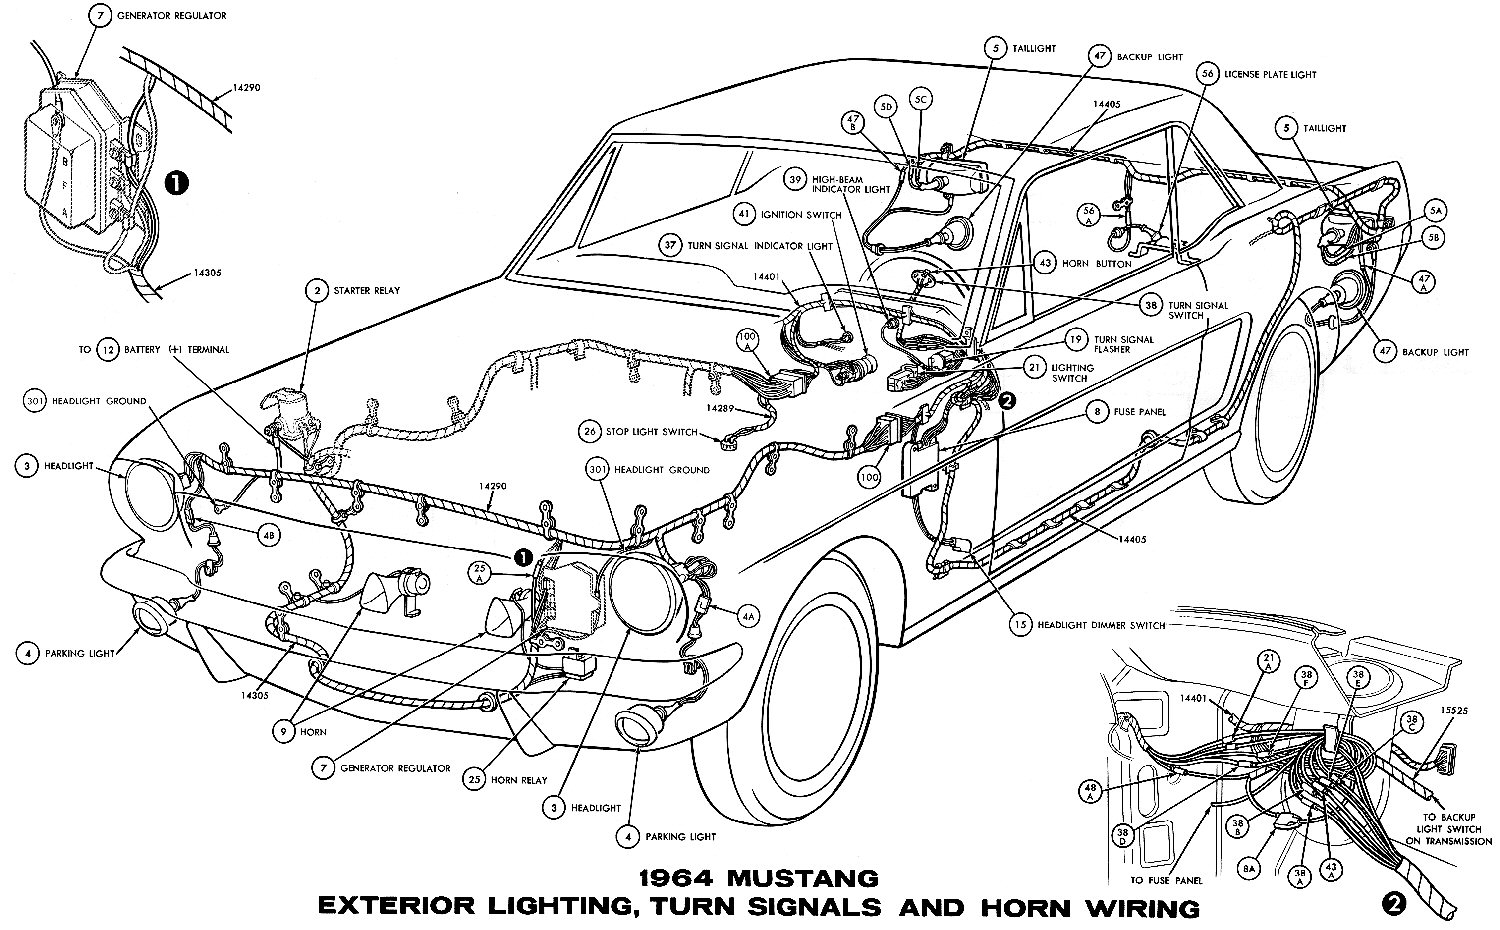 hight resolution of 1964 mustang wiring diagrams average joe restorationsm1964h 1964 mustang exterior lighting turn signals and horns